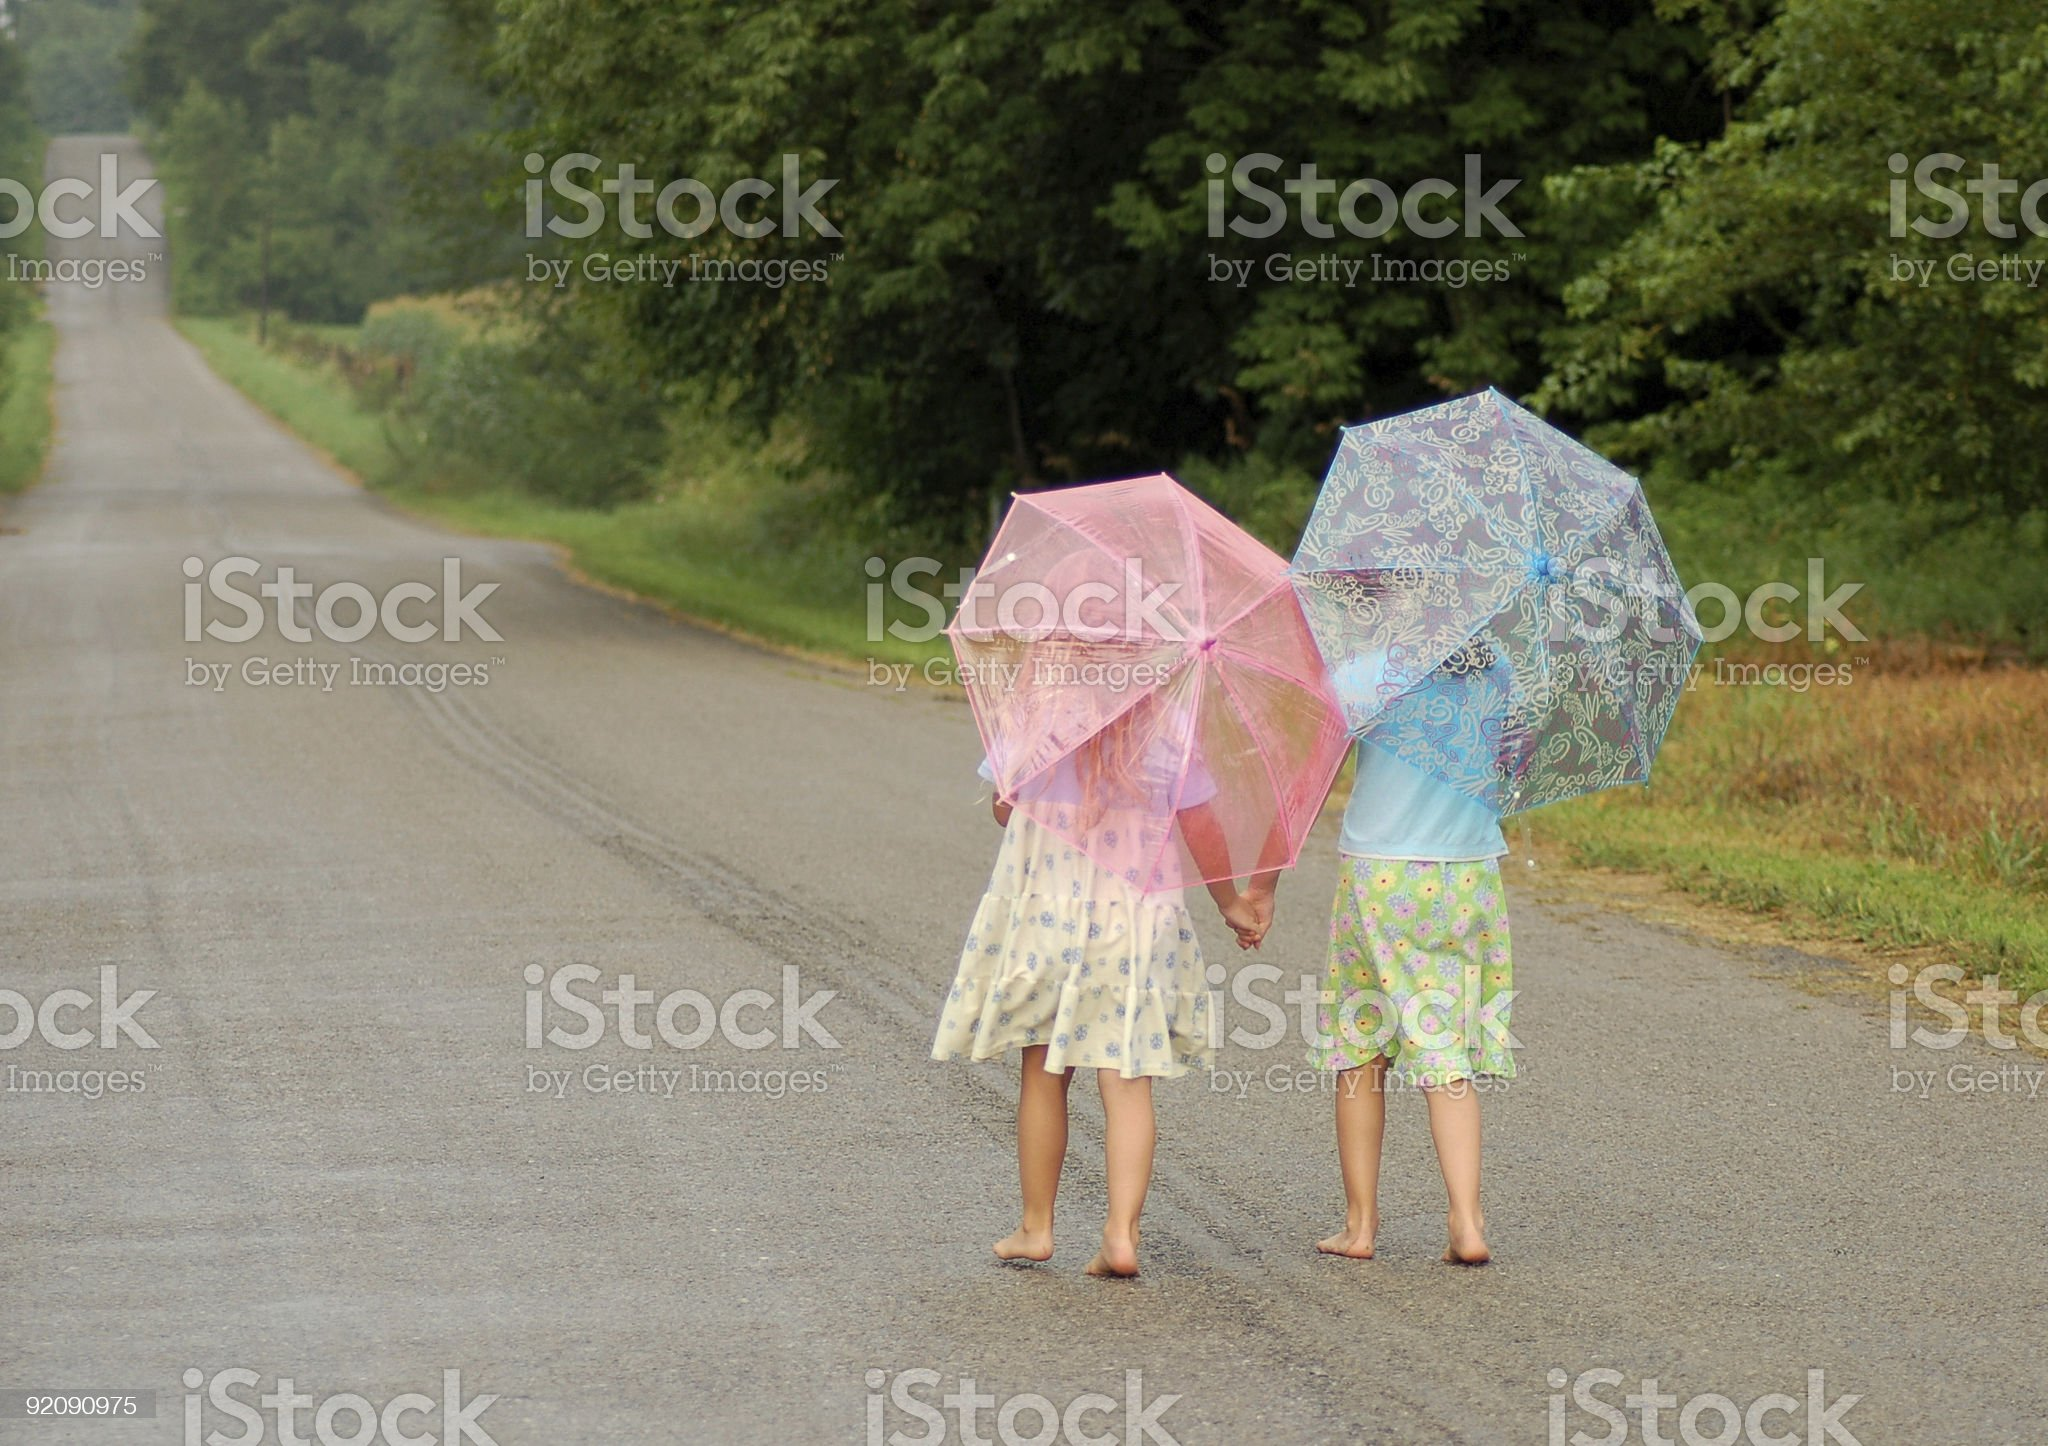 Two kids Walking Together Hand-in-Hand With Umbrellas royalty-free stock photo